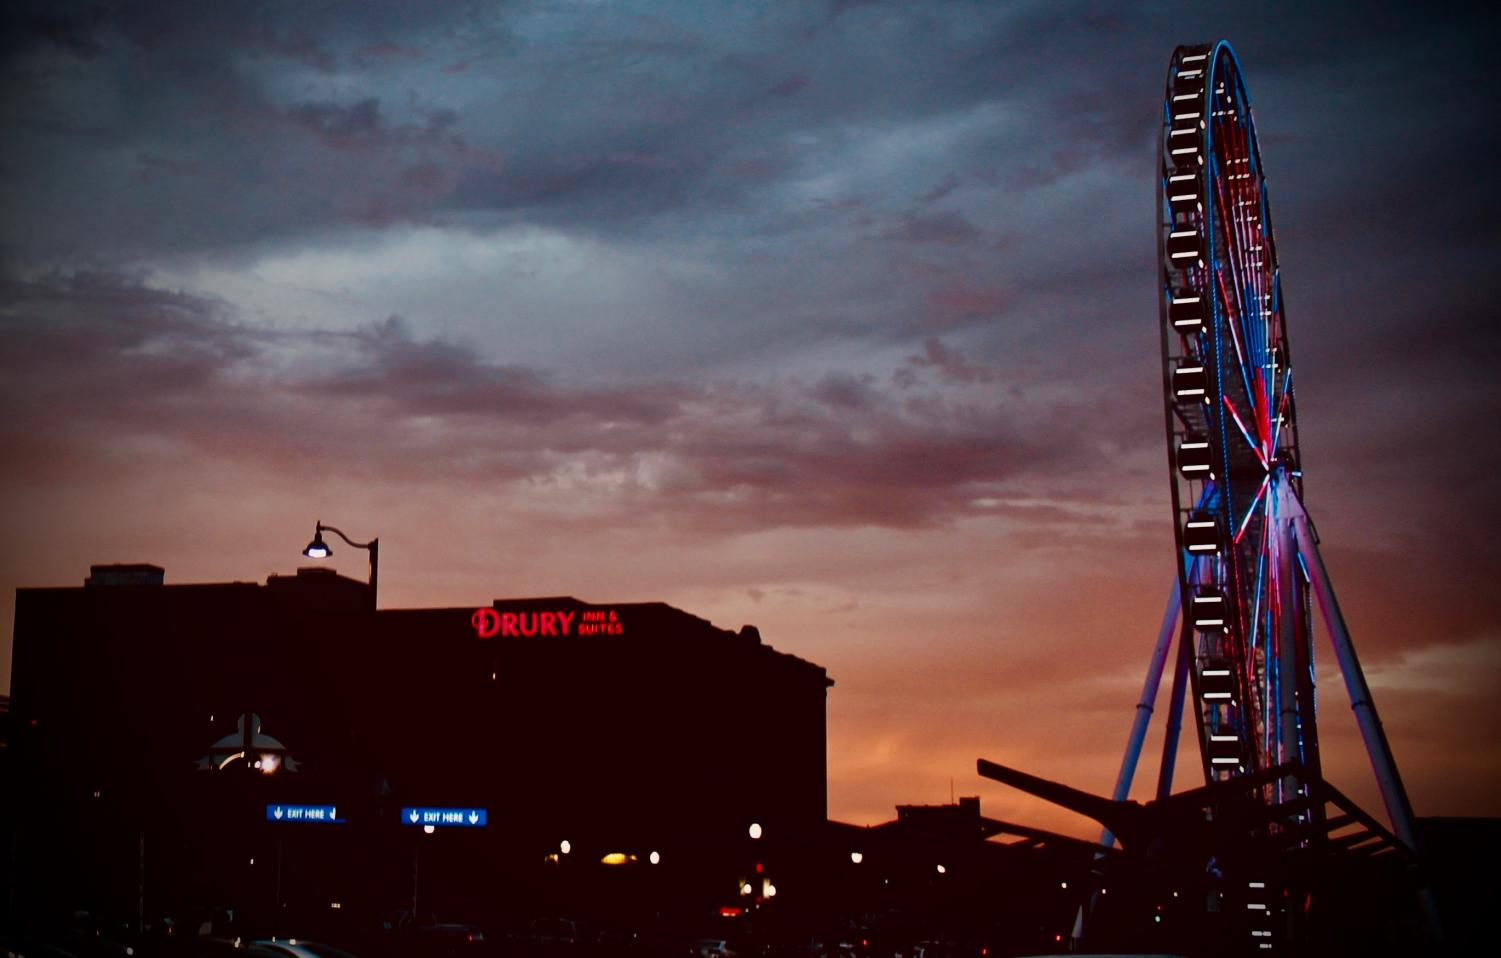 The St. Louis Wheel at sunset.